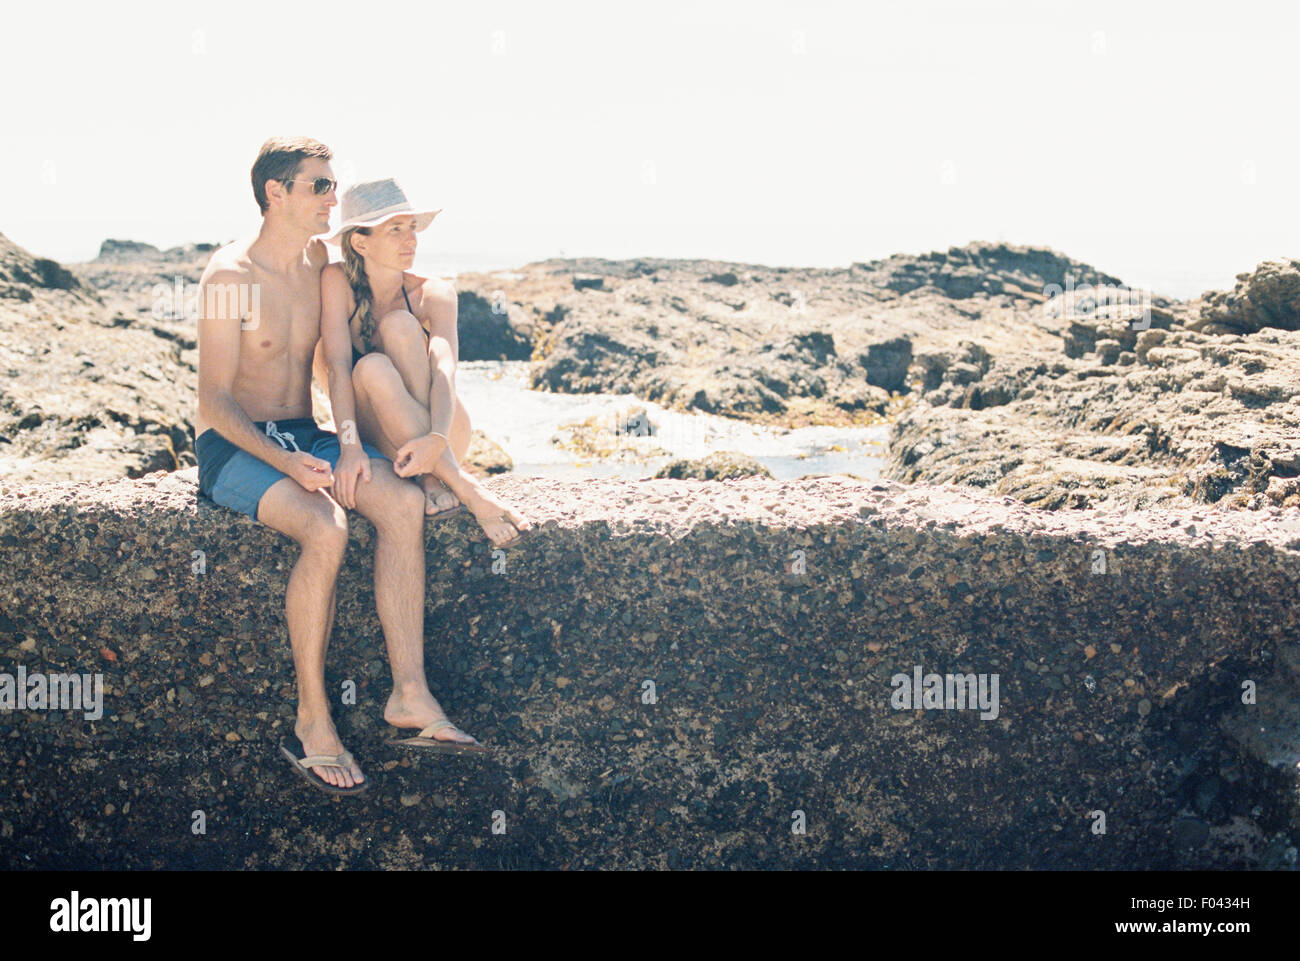 A man and woman, couple on the beach sitting on a wall by a rock pool. - Stock Image